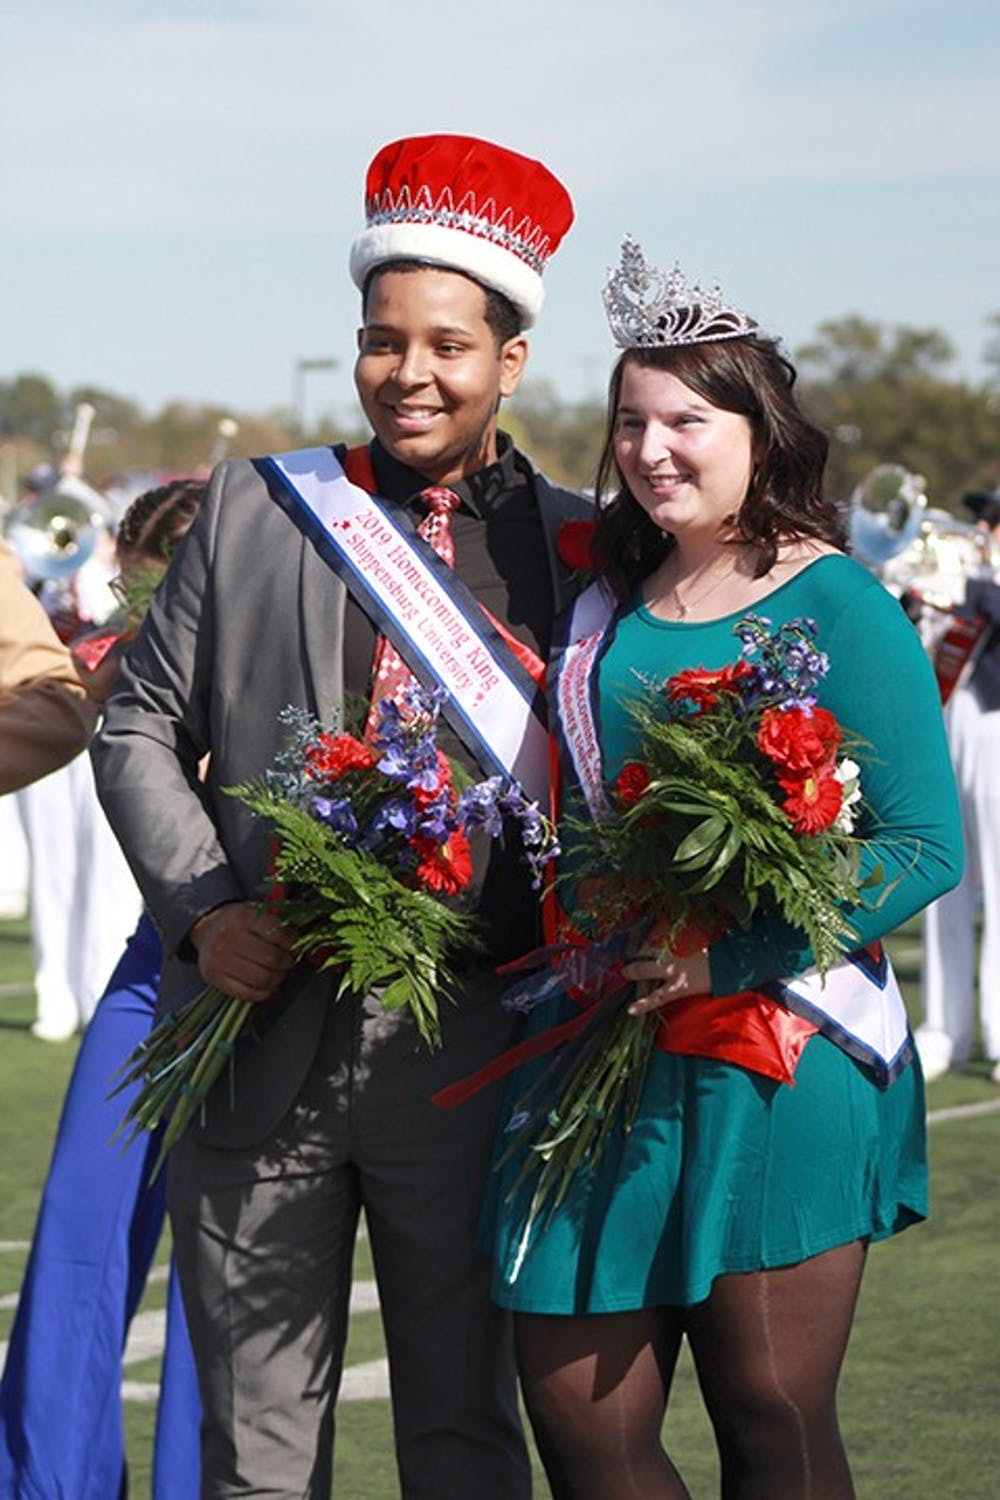 Shippensburg University 2019 Homecoming Royalty crowned